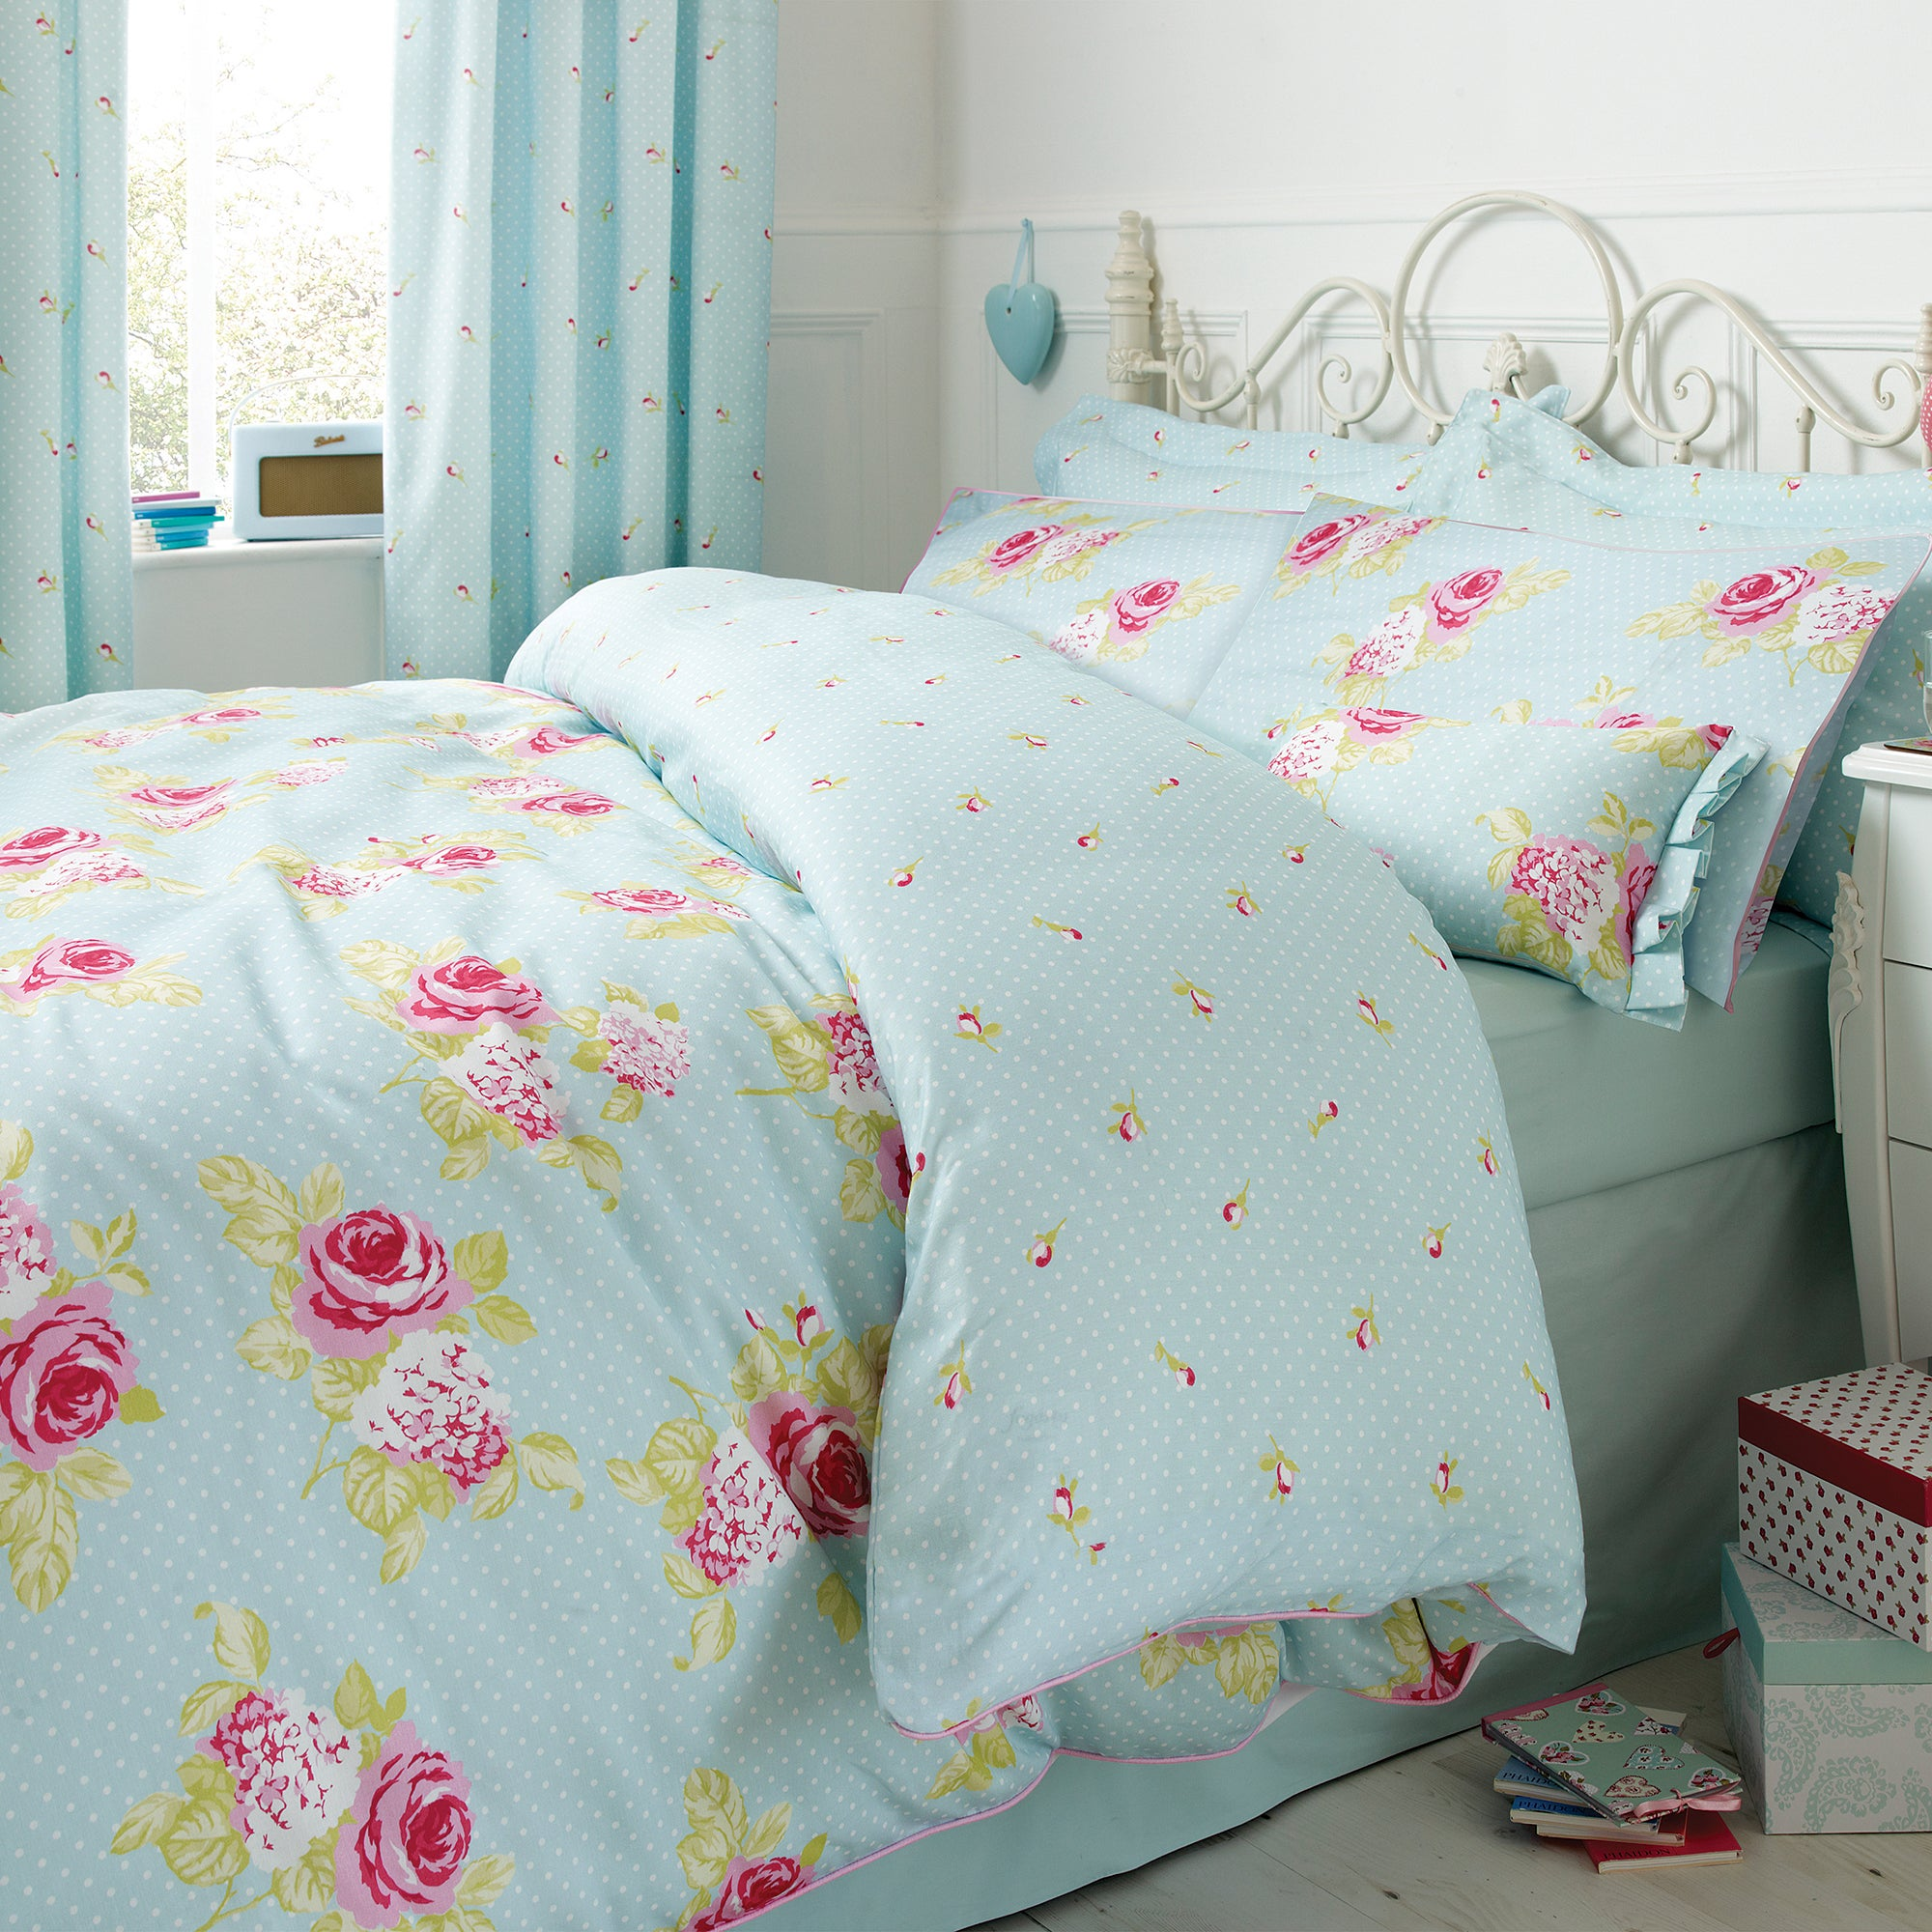 Rose and Ellis Clarendon Collection Duvet Cover Set